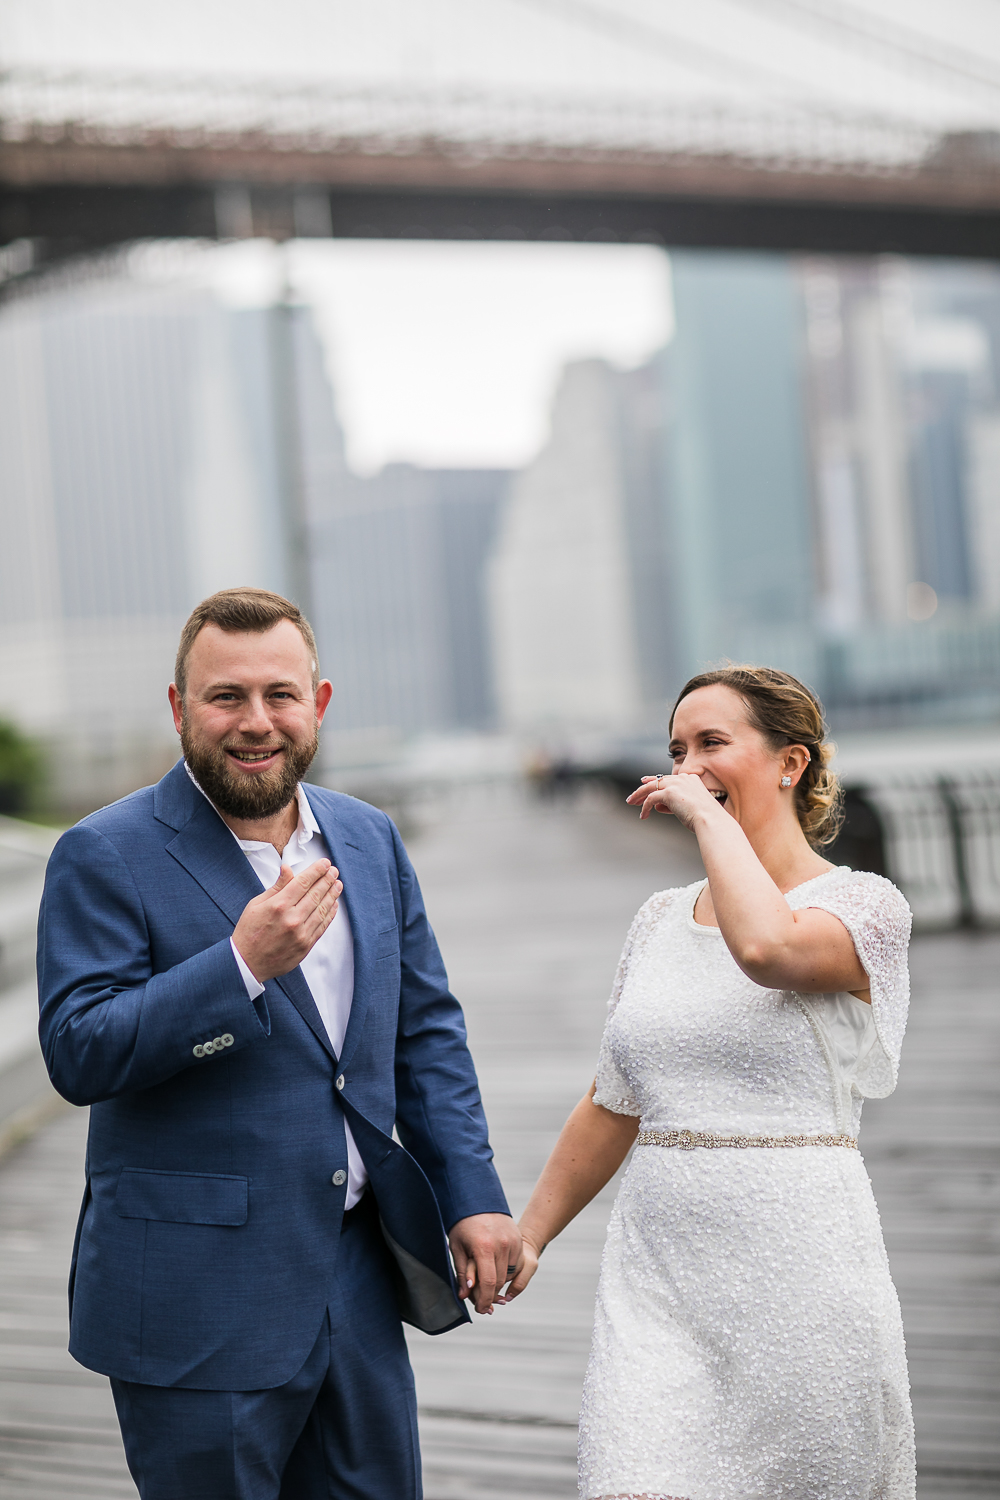 Bride and groom laughing. New York Bride in a short wedding dress and groom in a blue suit pose together for outdoor wedding photos in New York City. | Intimate Wedding at the Malthouse in Manhattan, New York City.